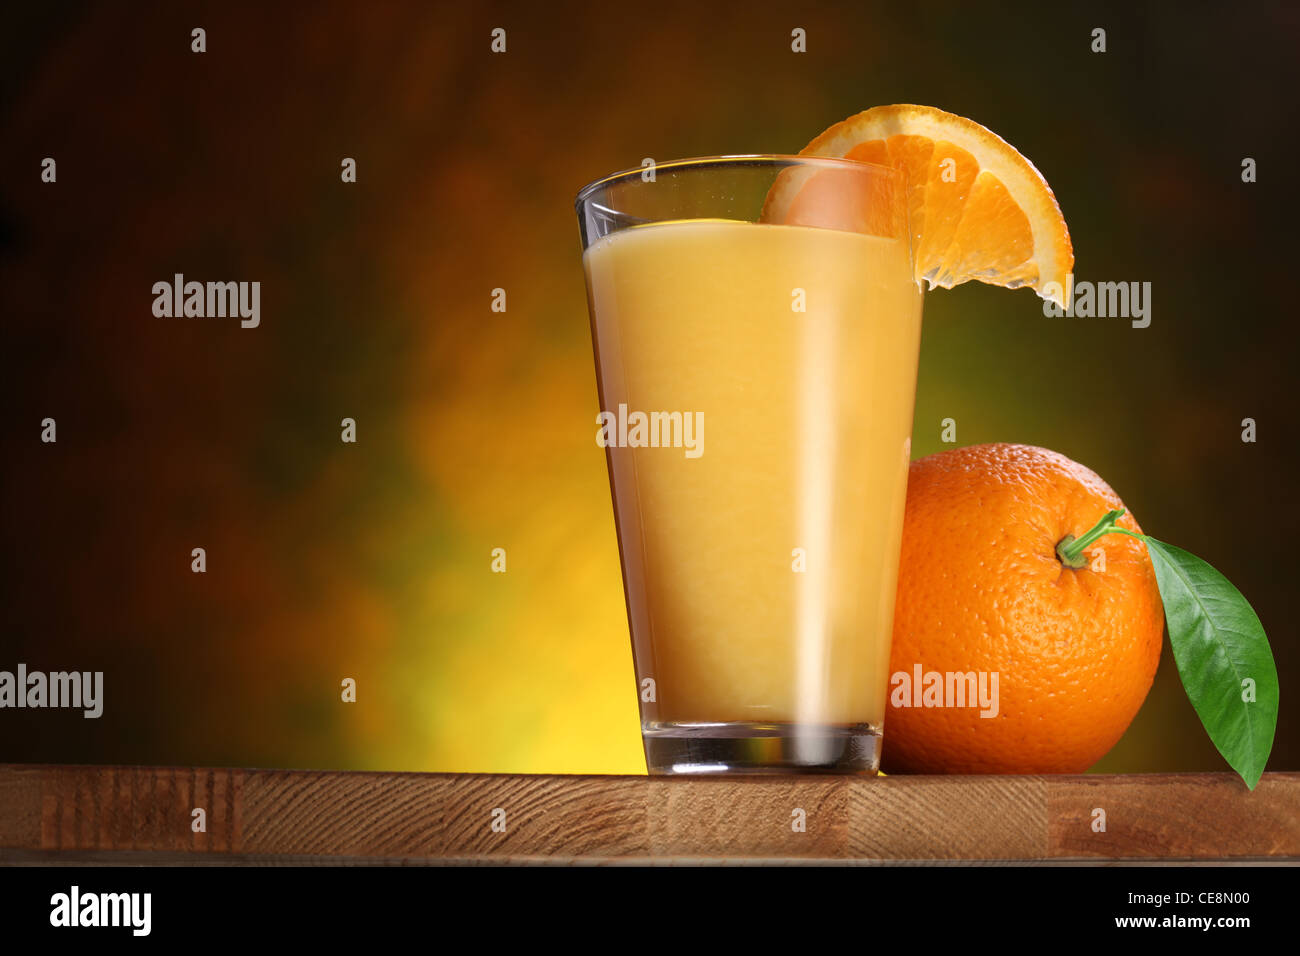 Oranges and glass of juice on a wooden table. - Stock Image